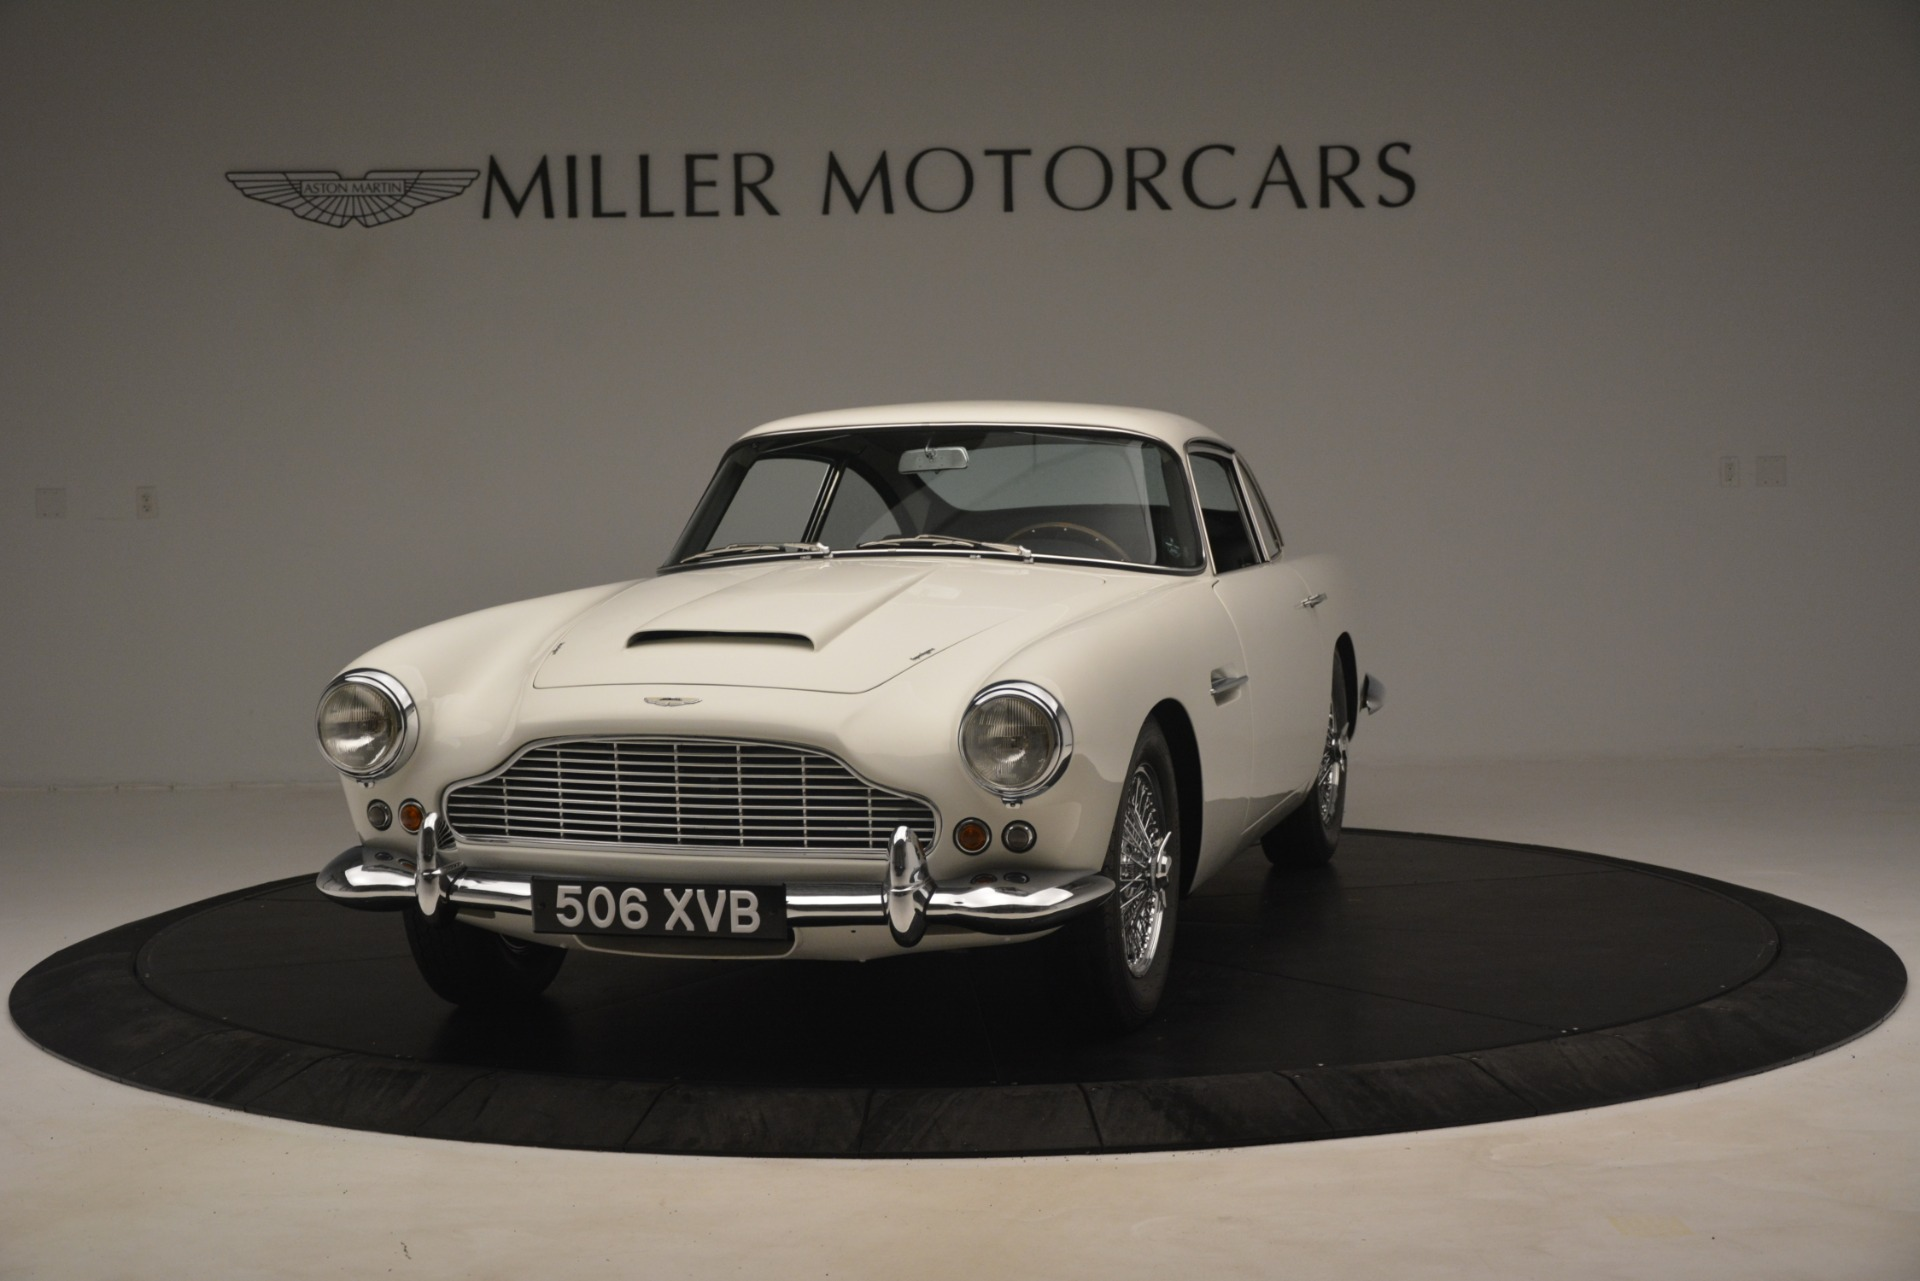 Used 1961 Aston Martin DB4 Series IV Coupe For Sale 795000 In Greenwich, CT